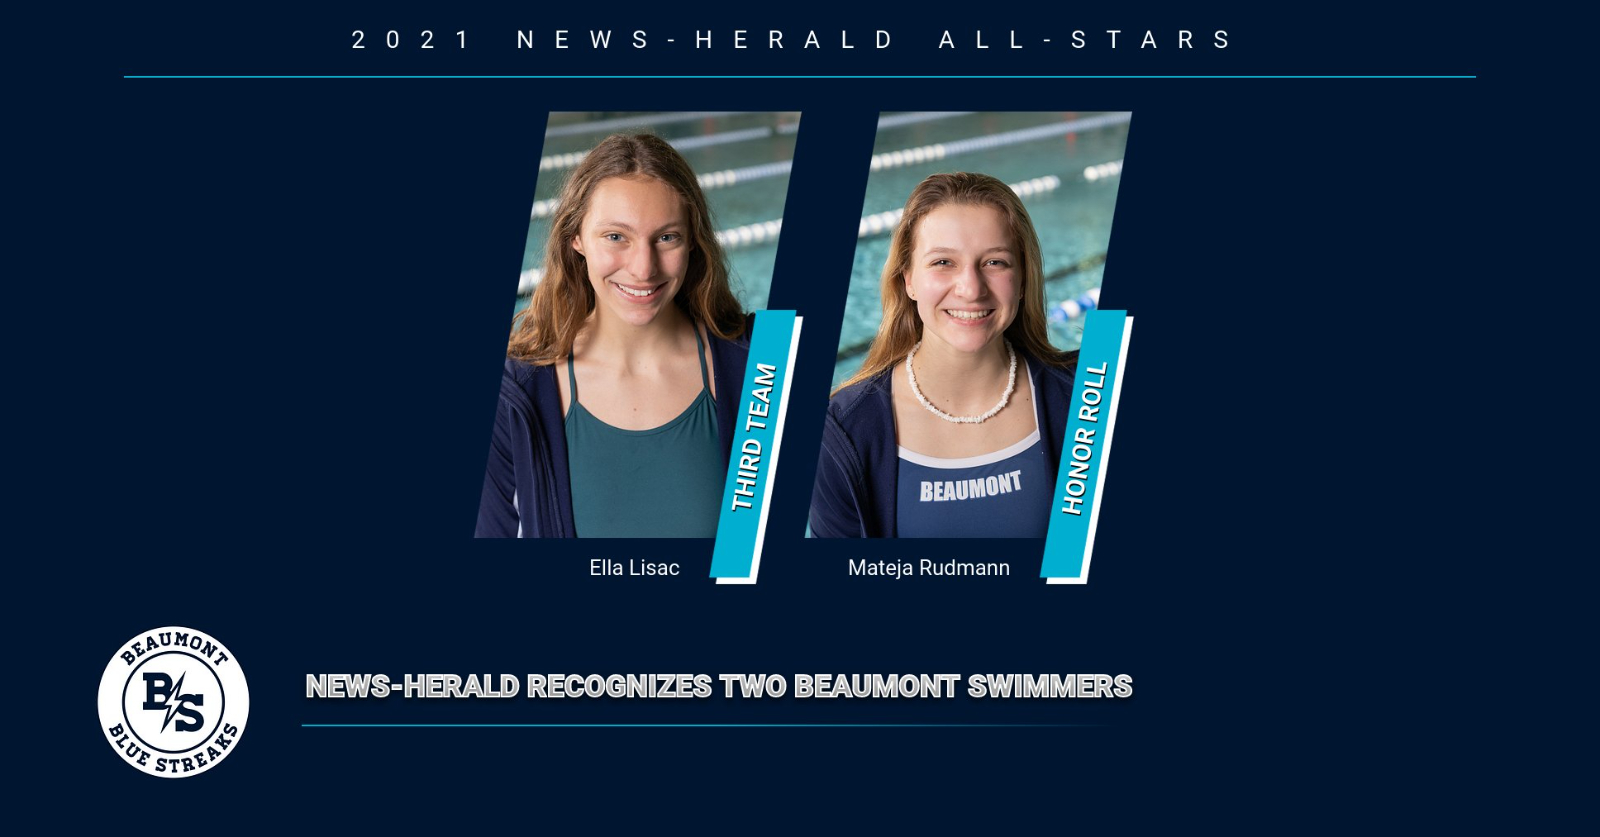 Lisac Named News-Herald All-Star, Rudmann Placed on Honor Roll